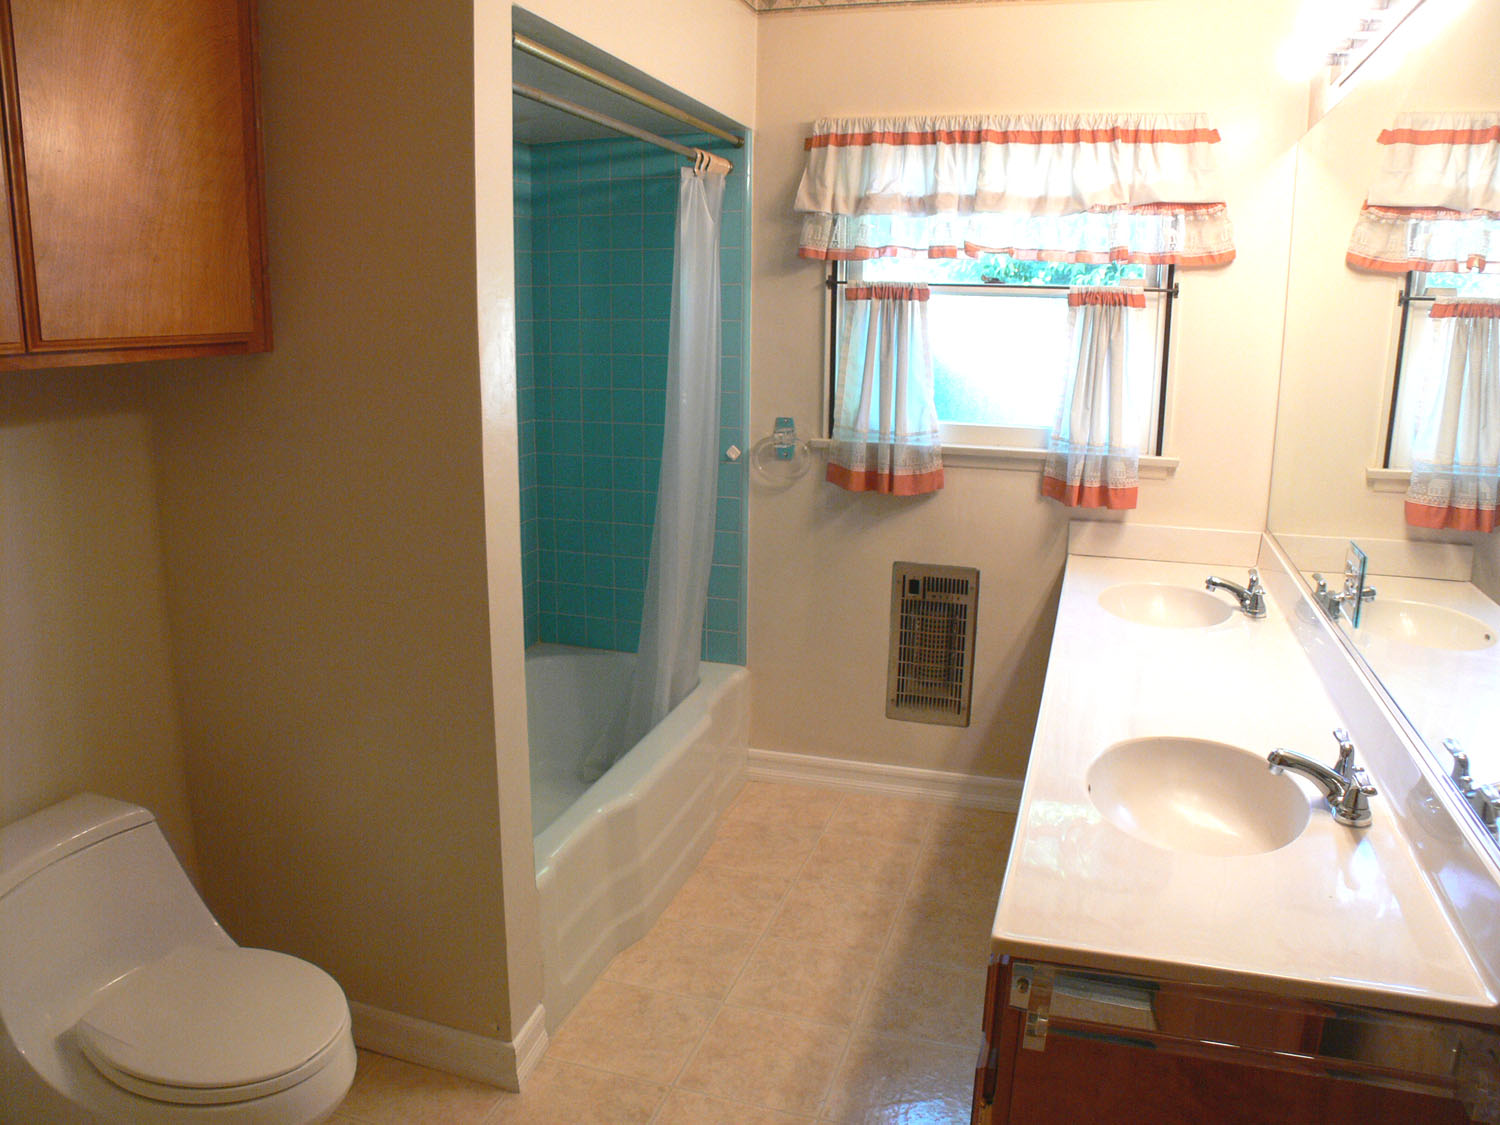 One of the three bathrooms. This one has double sinks, newer low-flow toilet, and impeccable tile in the shower/tub enclosure!